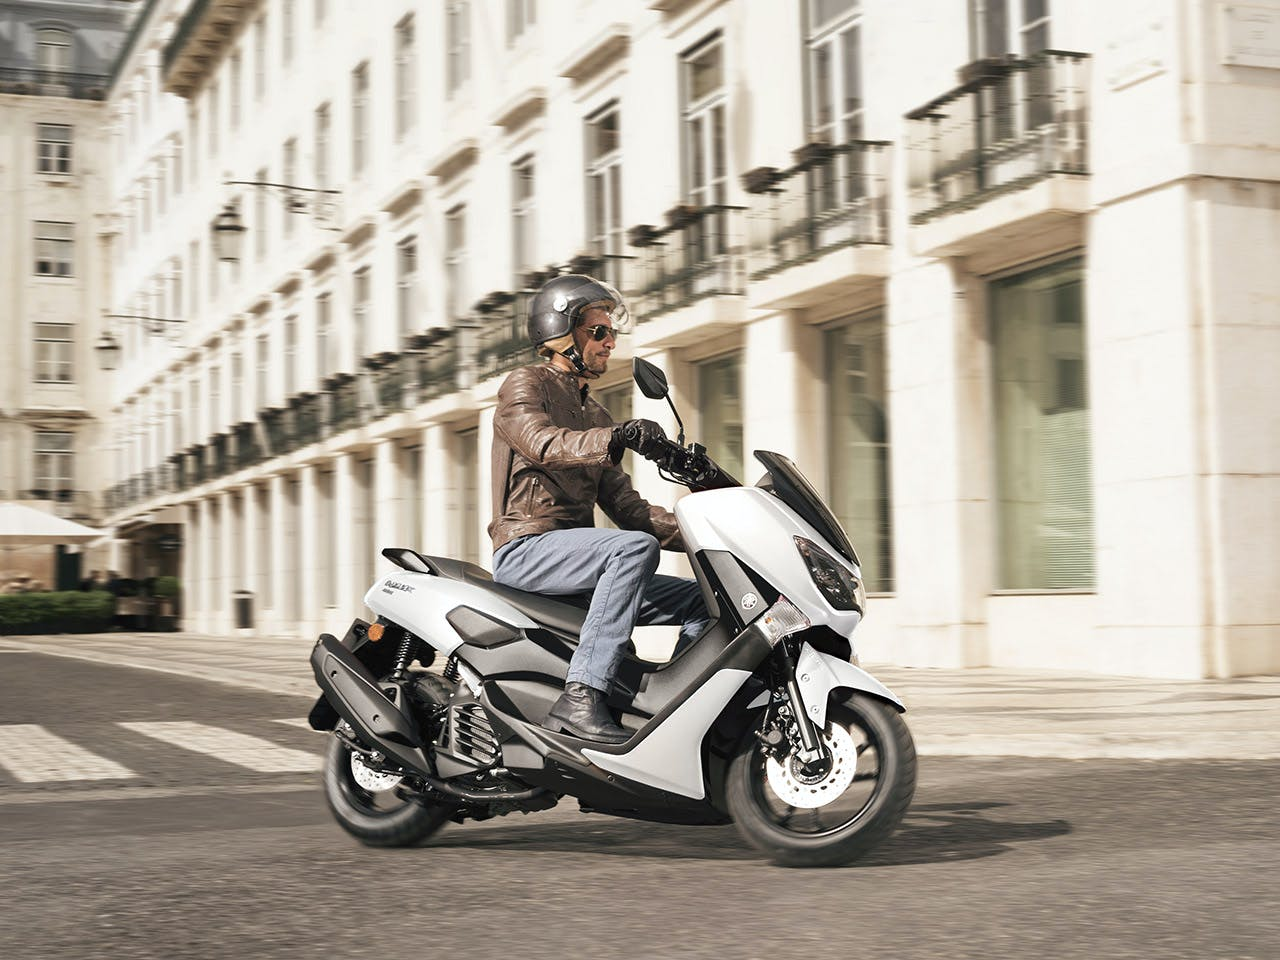 YAMAHA NMAX 155 in Milky White colour on the road